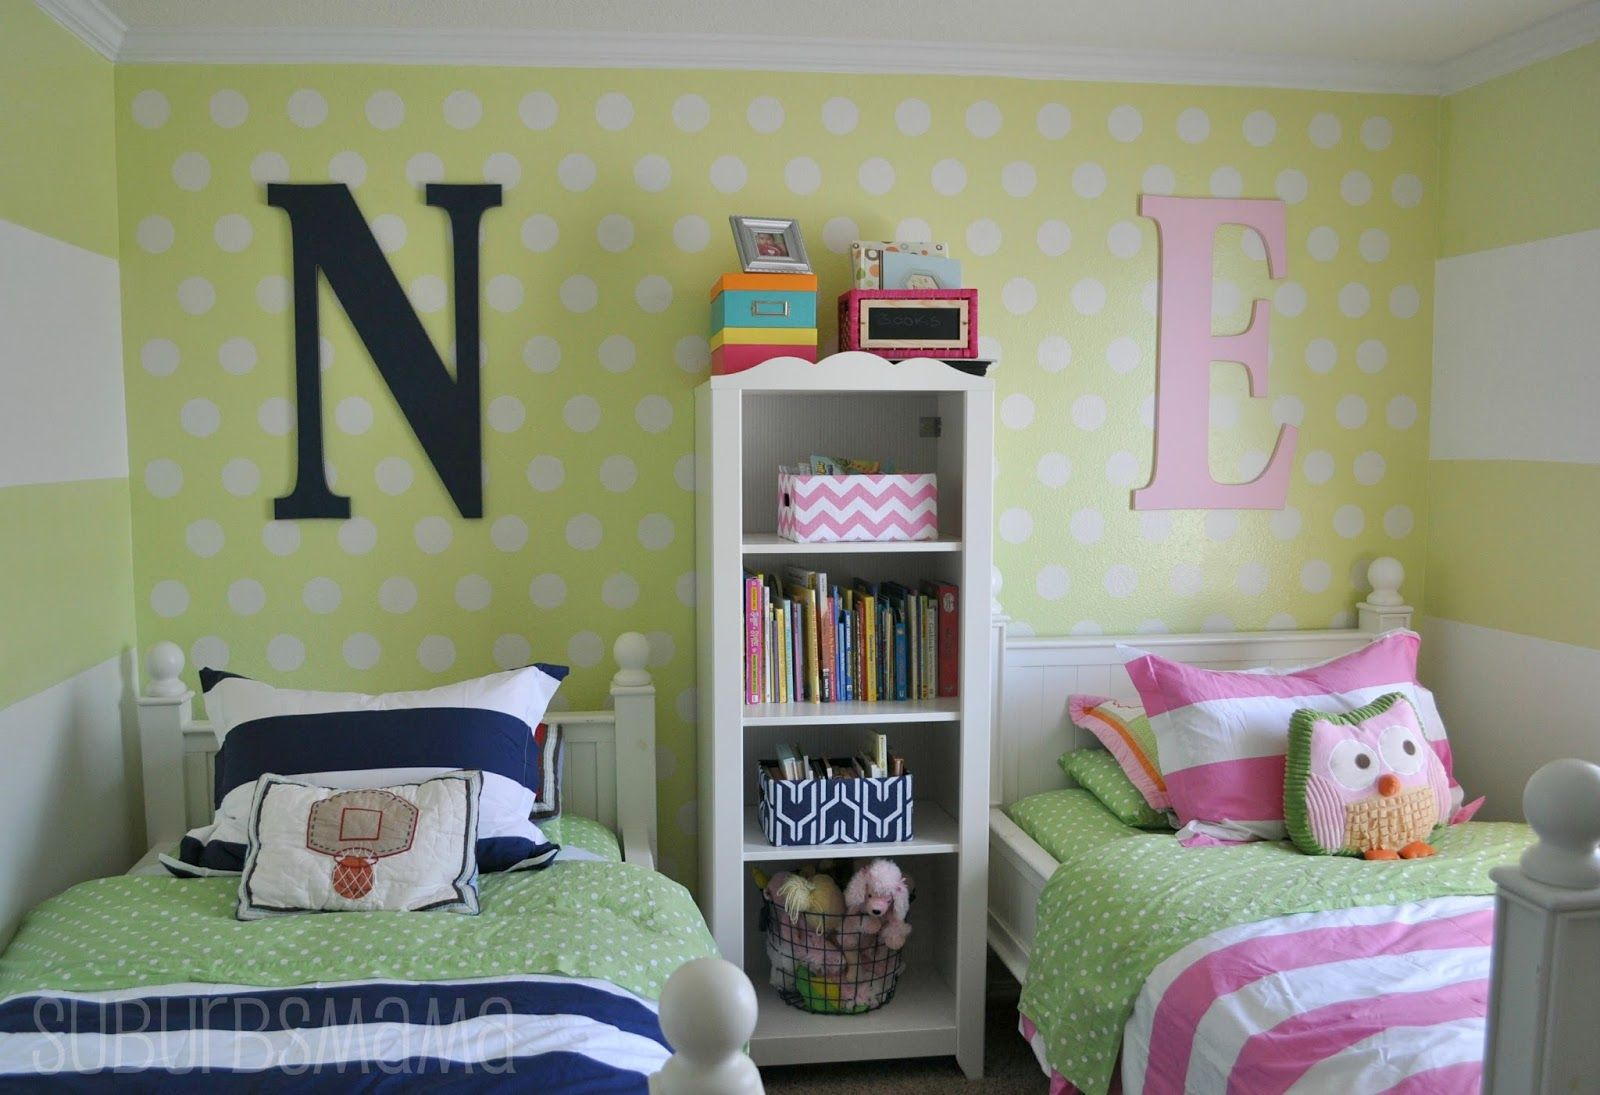 Kids room design for two girls - 16 Gorgeous Boy Girl Room Ideas Beautiful Boy And Girl Shared Bedroom With Two Single Size Beds Navy And Pink Stripes Pillows Blankets Plus Basketball